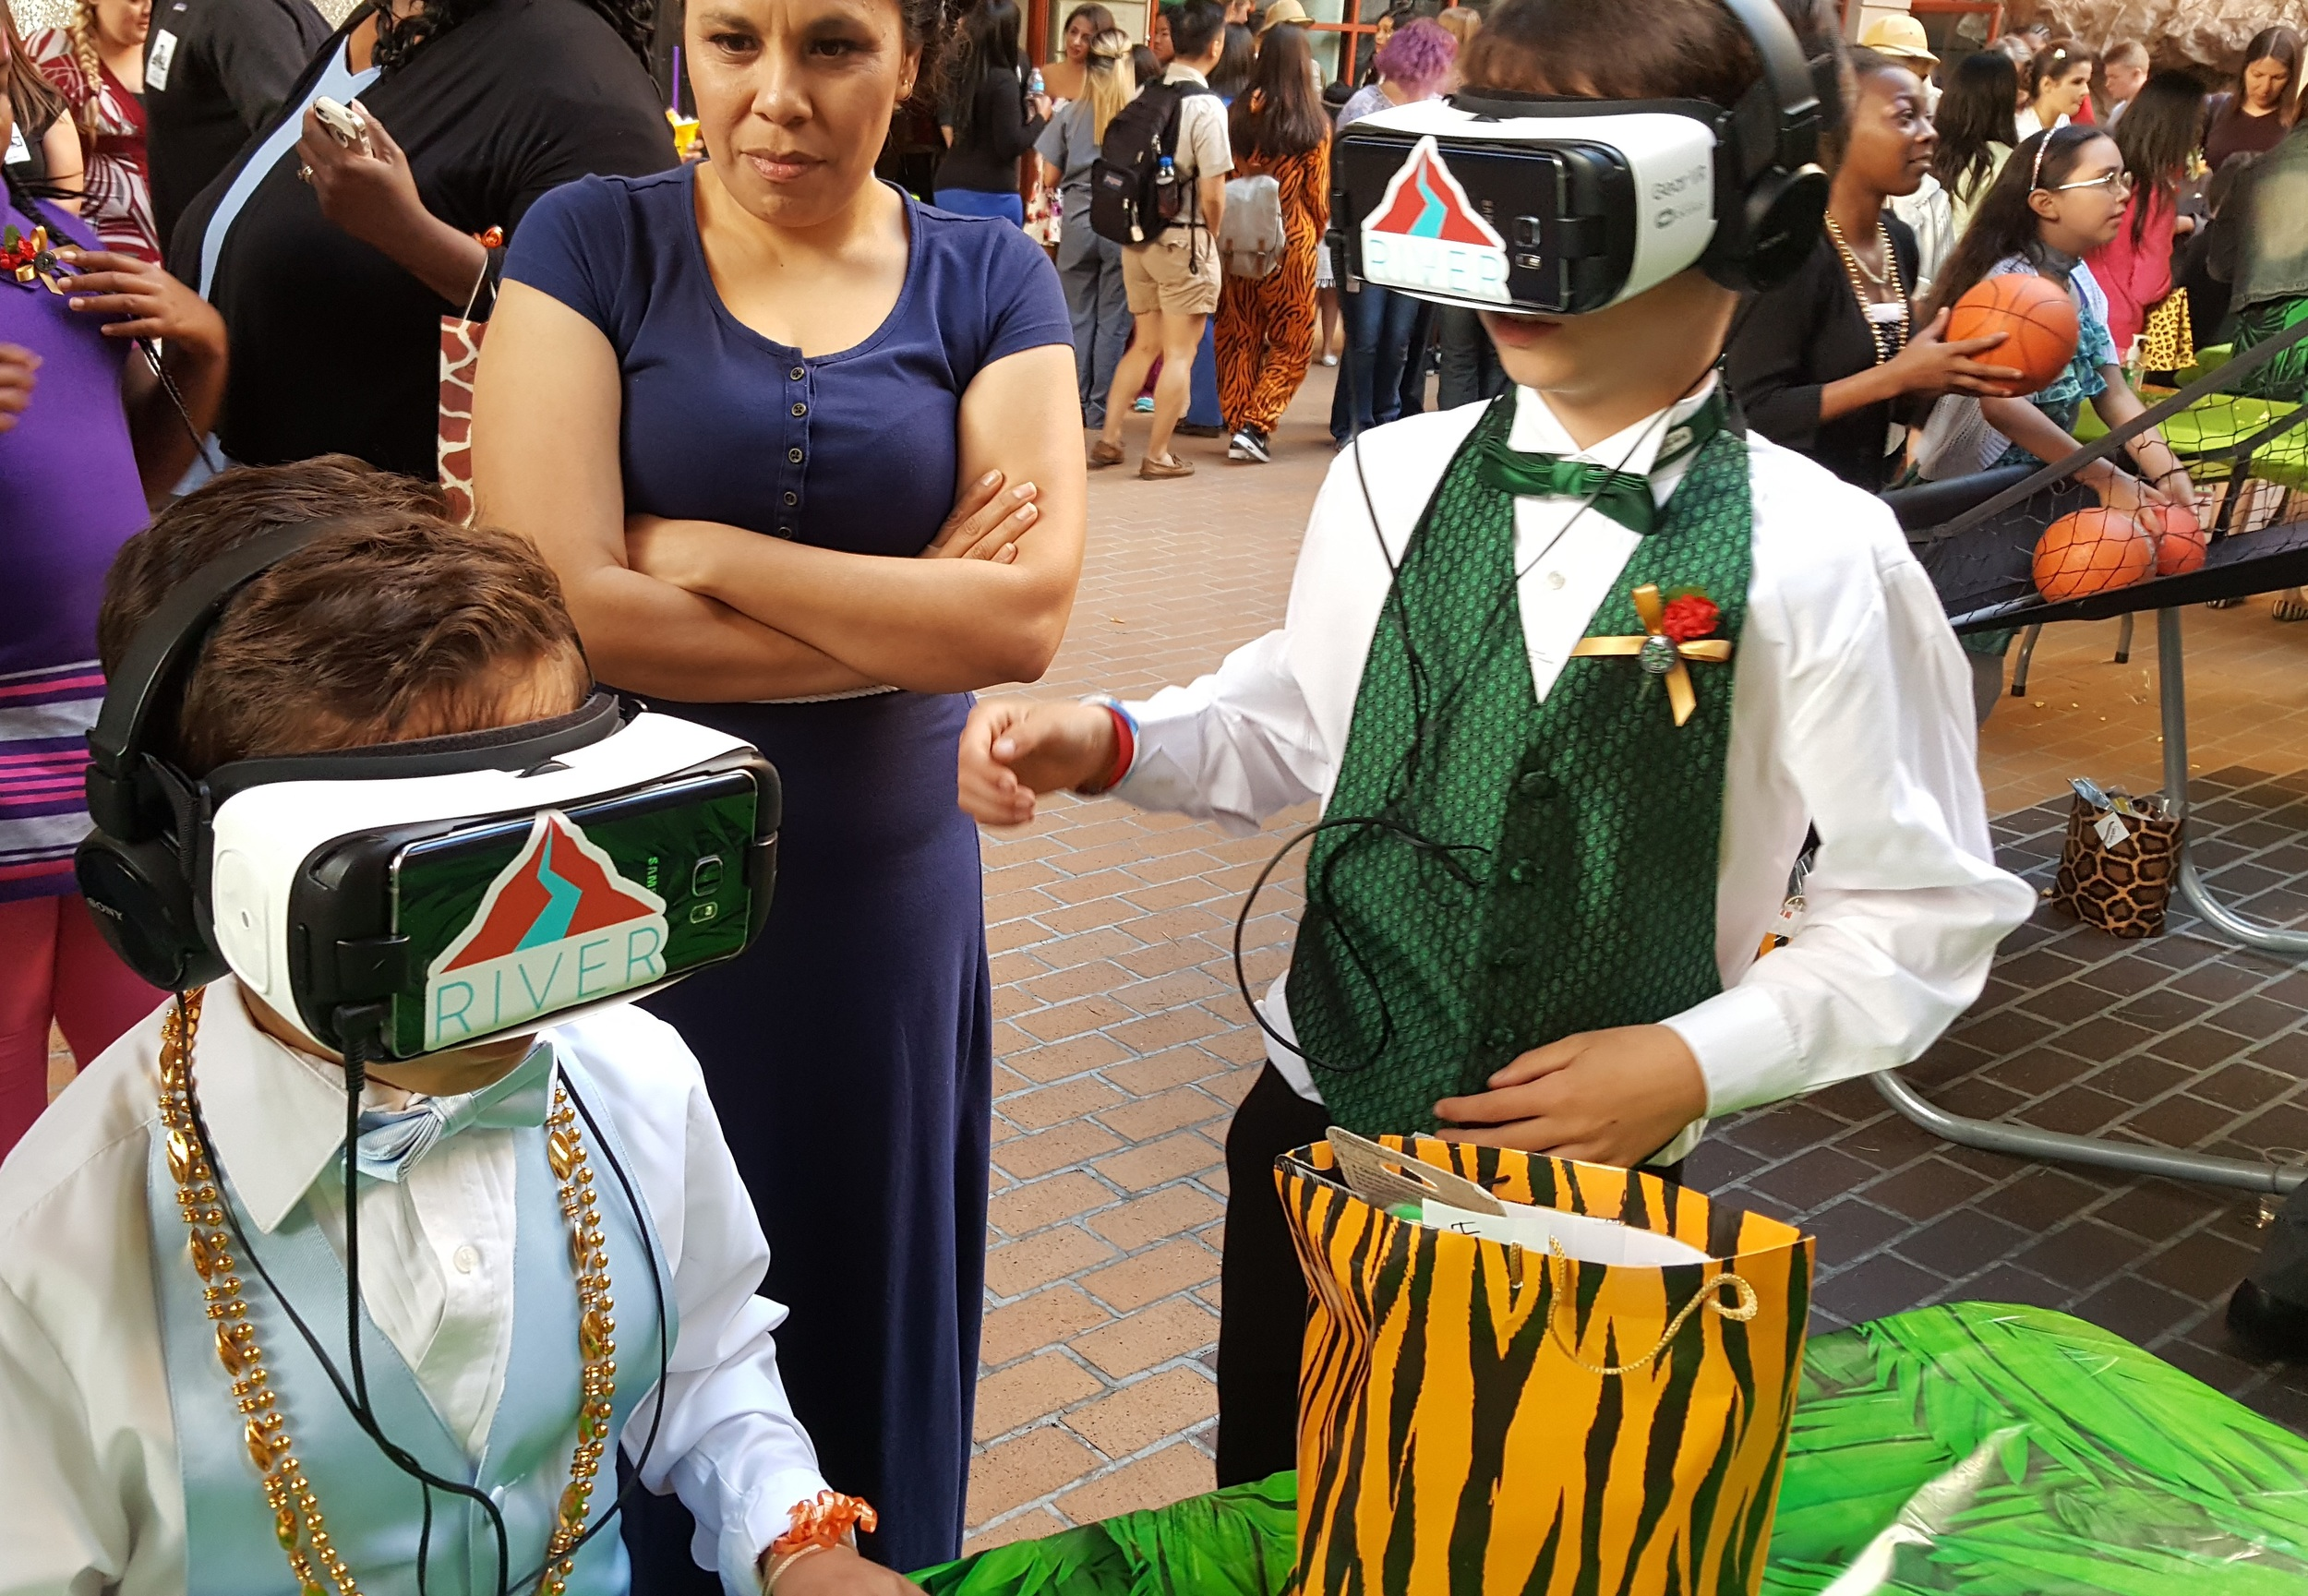 There were over 300 attendees dressed up in glamorous tuxedos and formal attire.